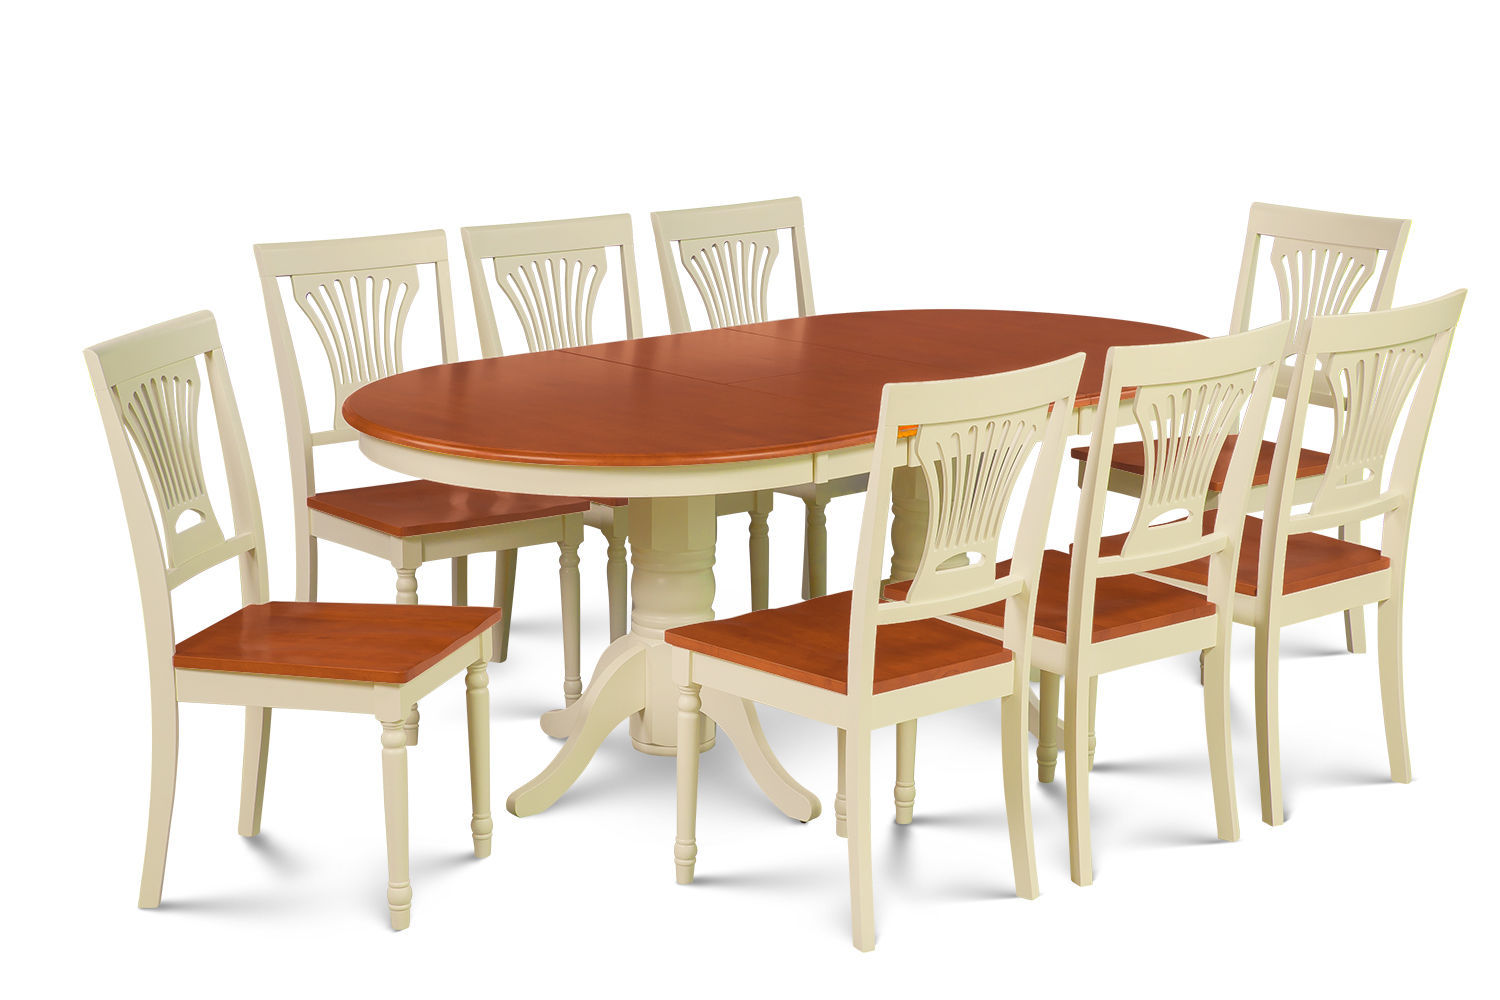 """DINETTE DINING ROOM TABLE SET 42""""X78"""" W. WOODEN SEATS IN BUTTERMILK & CHERRY"""